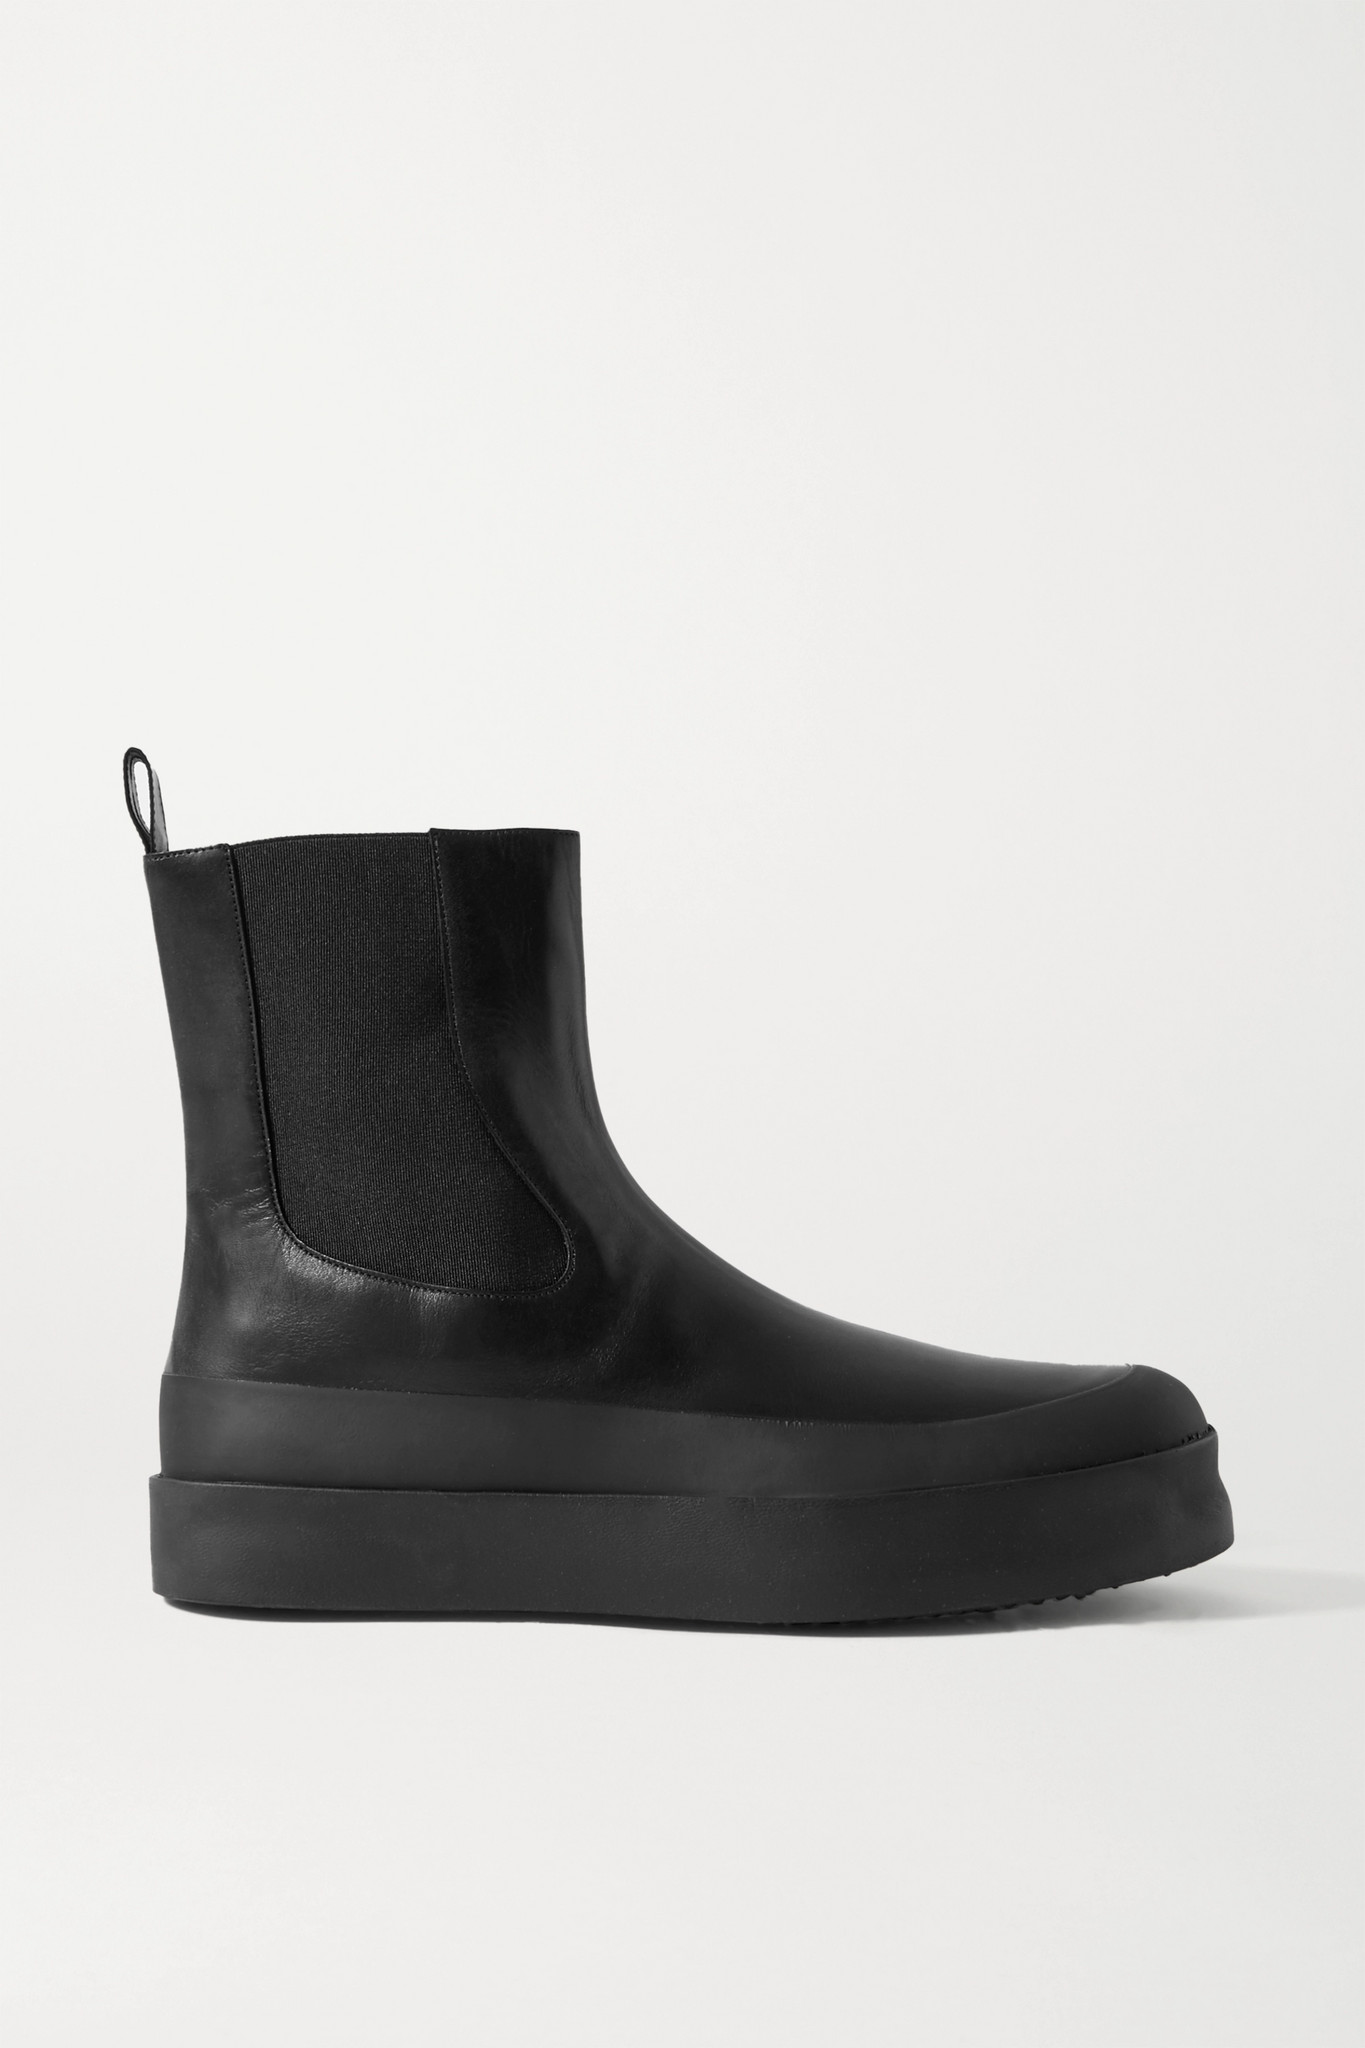 NEOUS - Zaniah Leather Chelsea Boots - Black - IT41